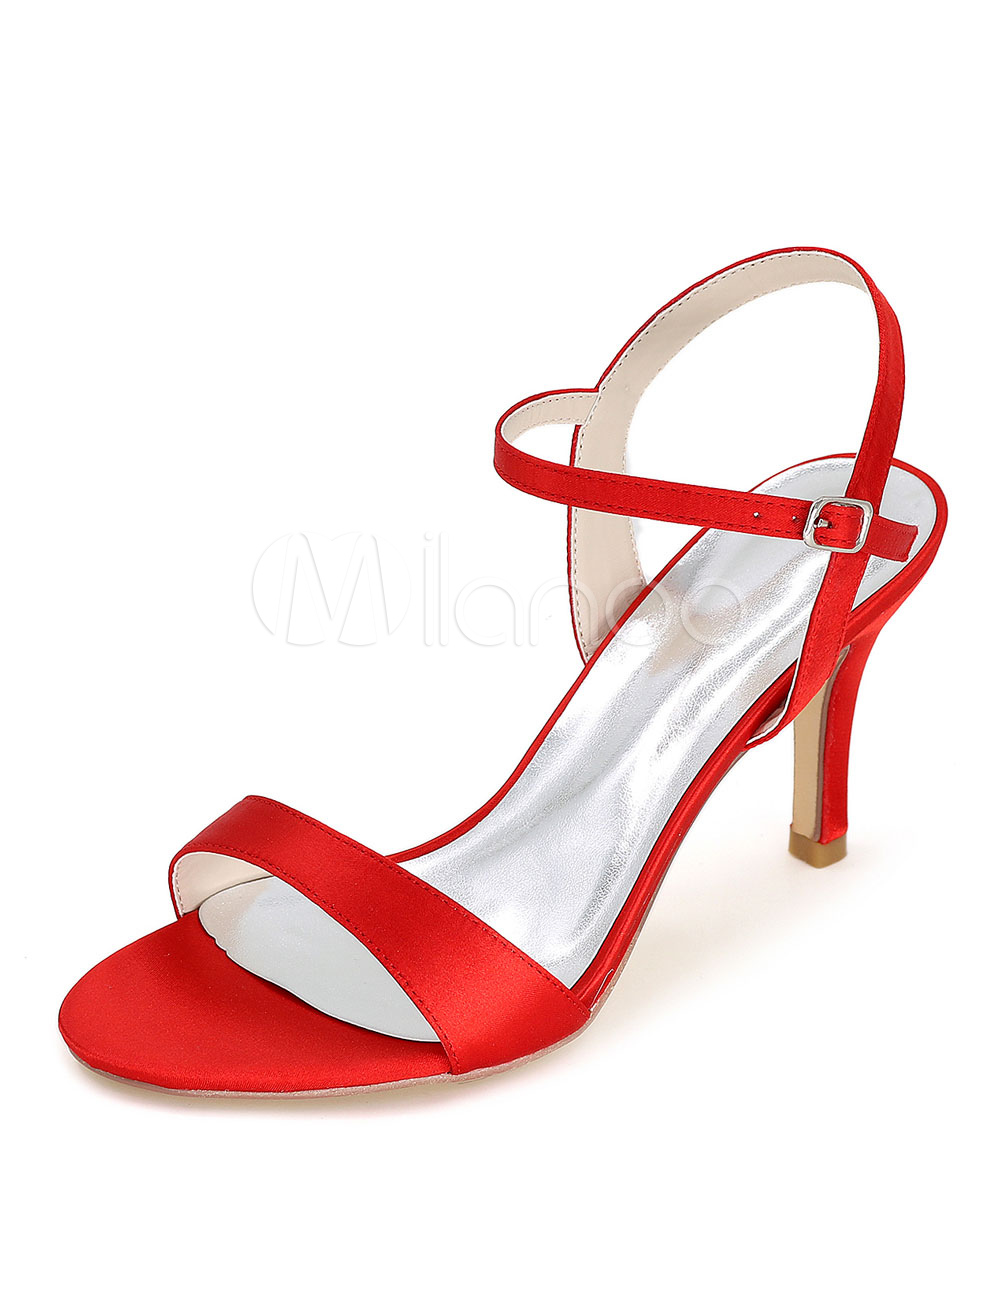 cb035700981 High Heel Sandals Satin Wedding Shoes Red Open Toe Bridal Shoes